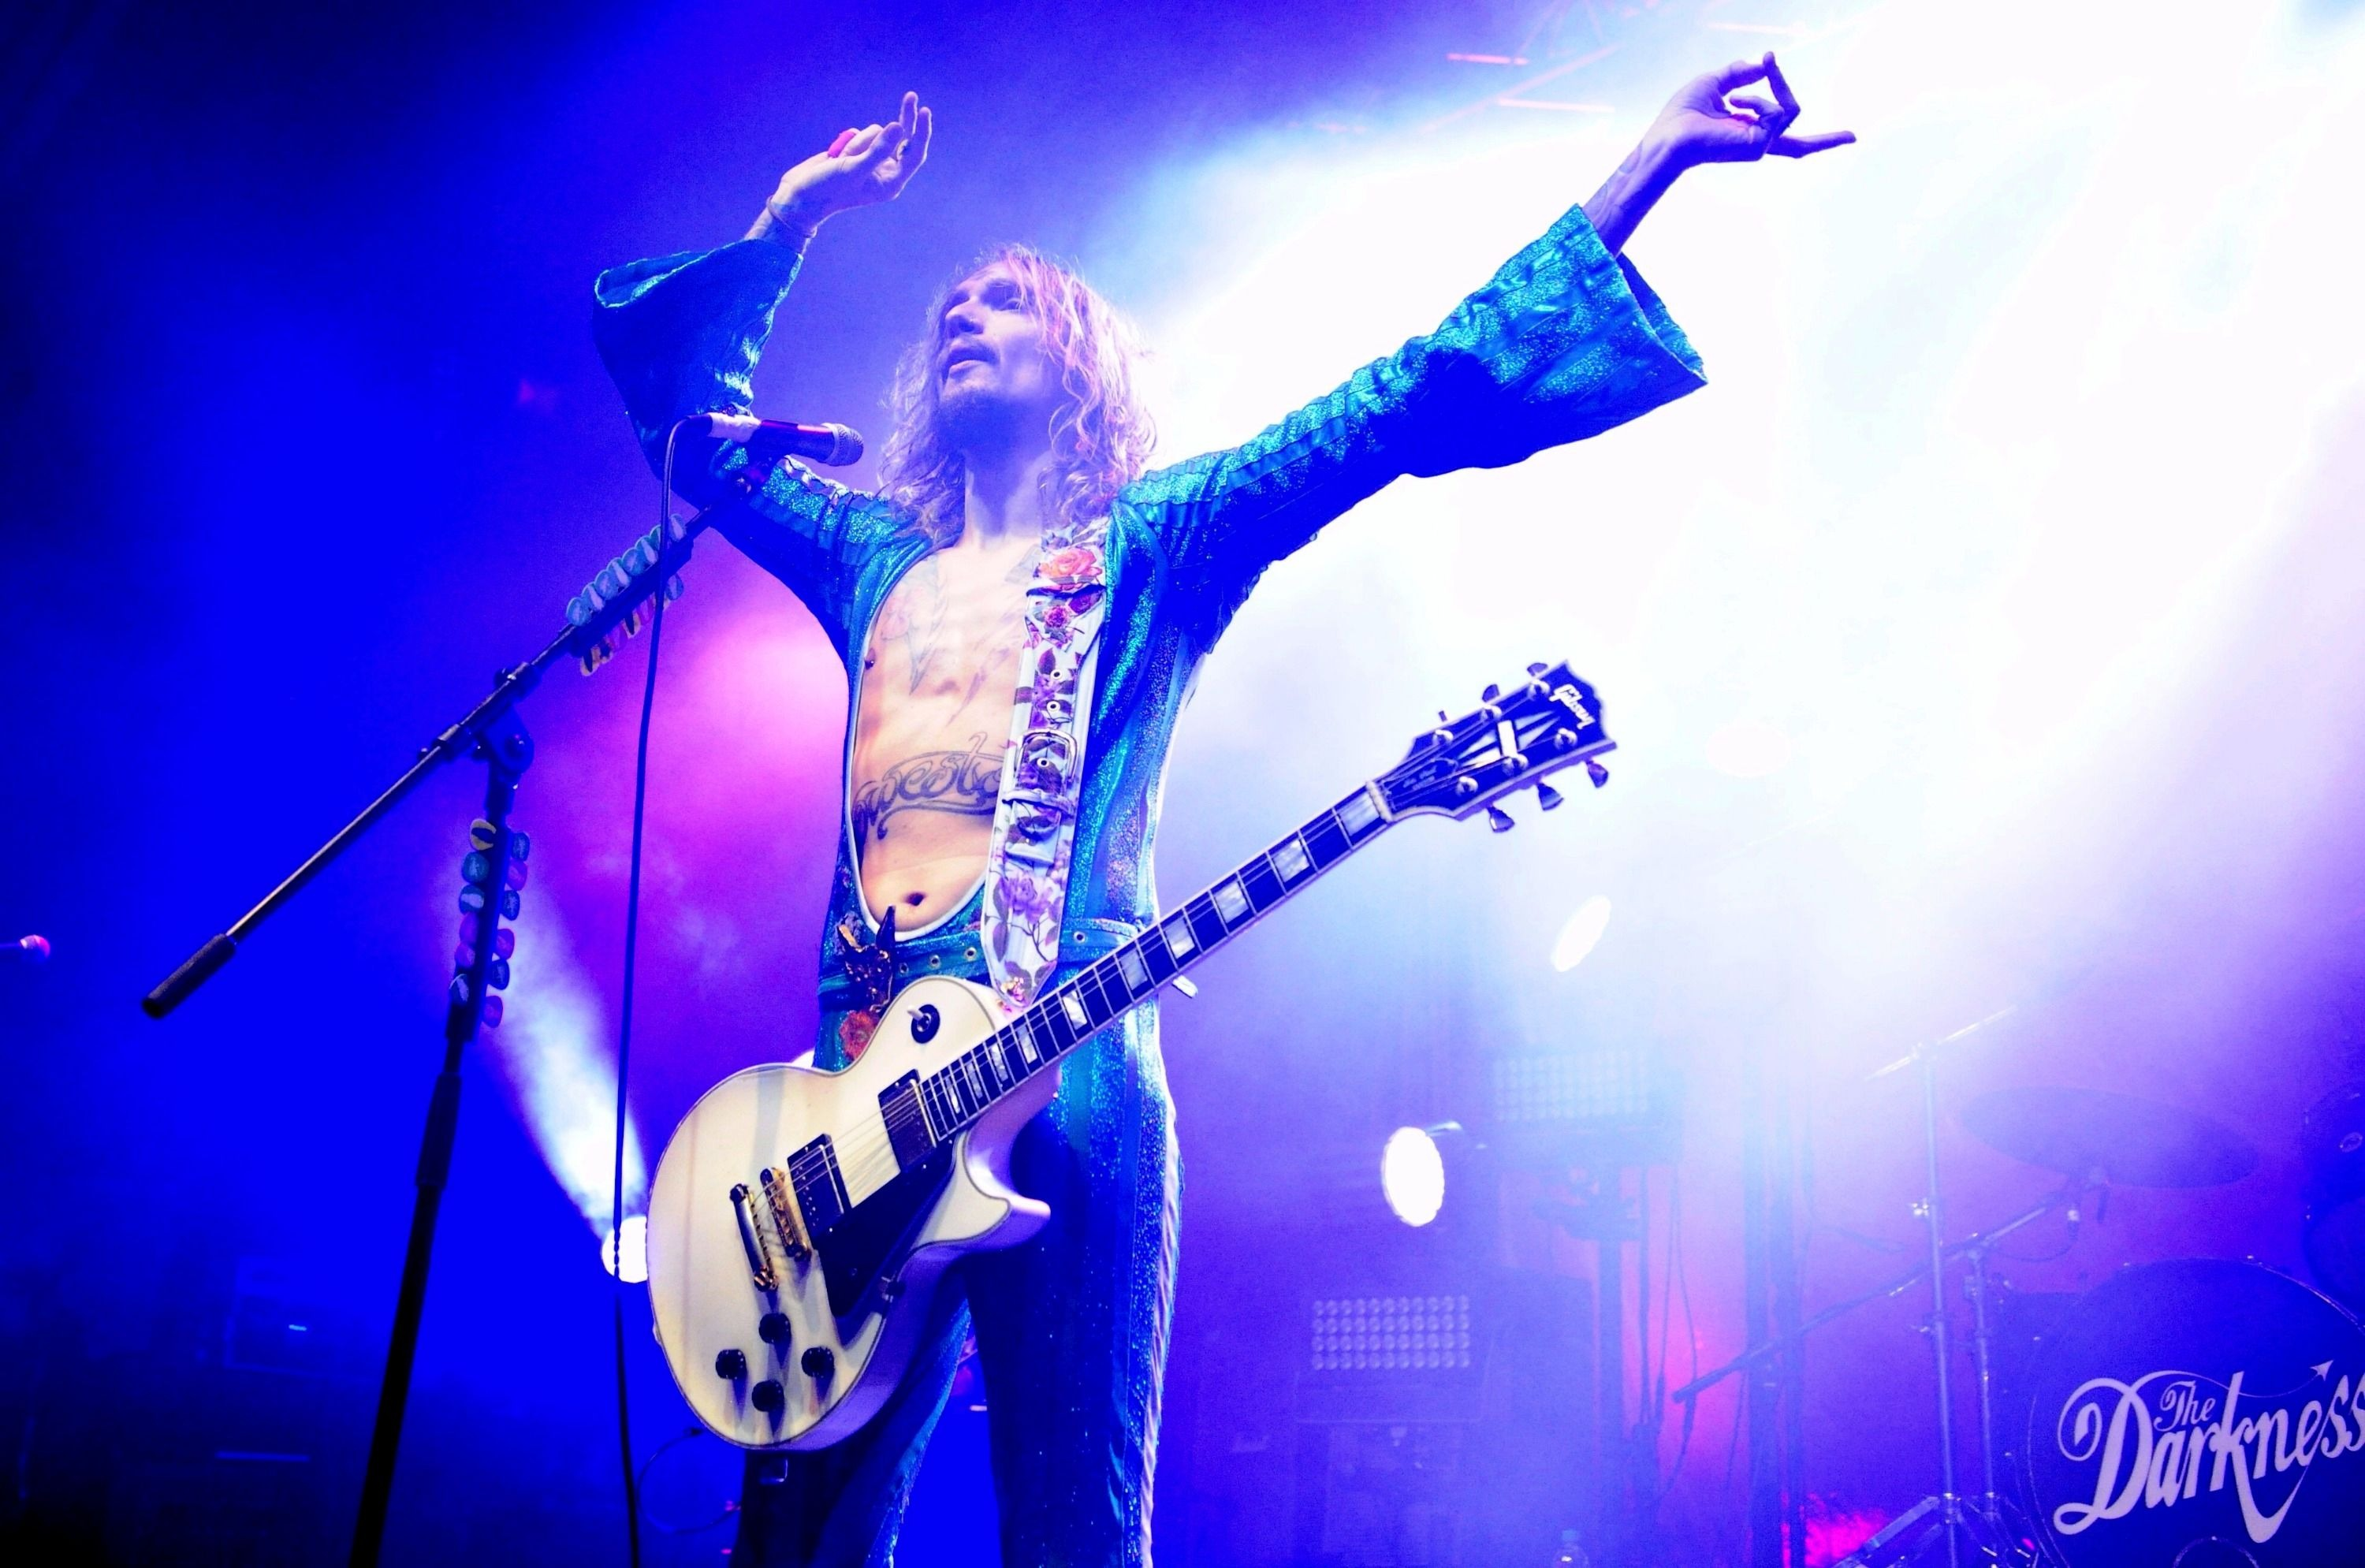 The Darkness @ o2 Academy, Newcastle